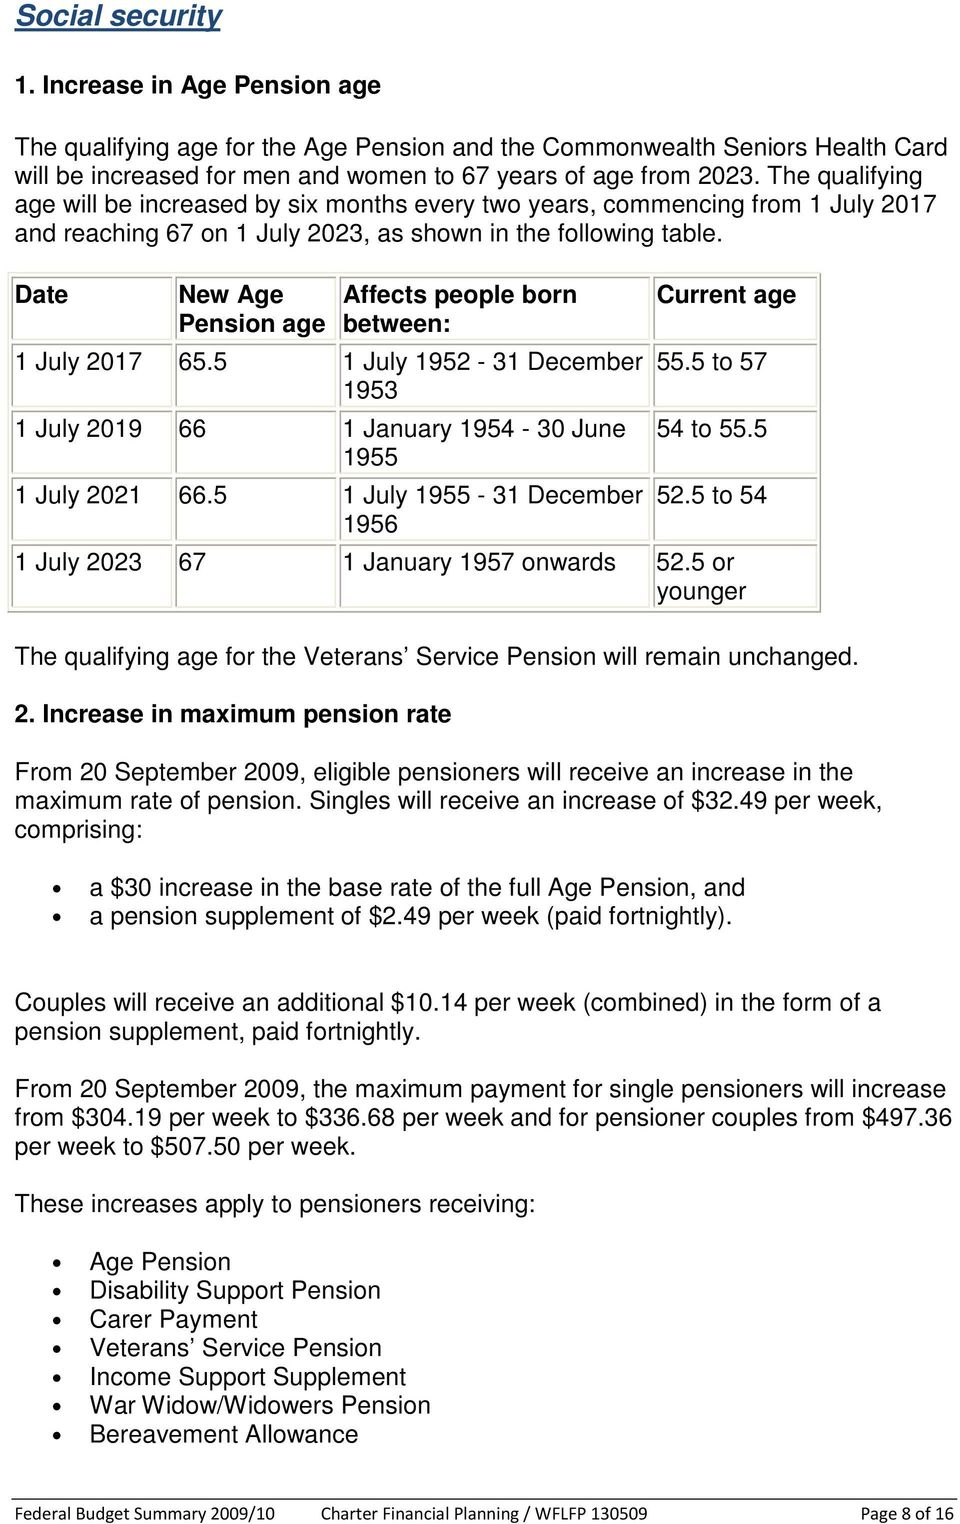 Date New Age Pension age Affects people born between: 1 July 2017 65.5 1 July 1952-31 December 1953 1 July 2019 66 1 January 1954-30 June 1955 1 July 2021 66.